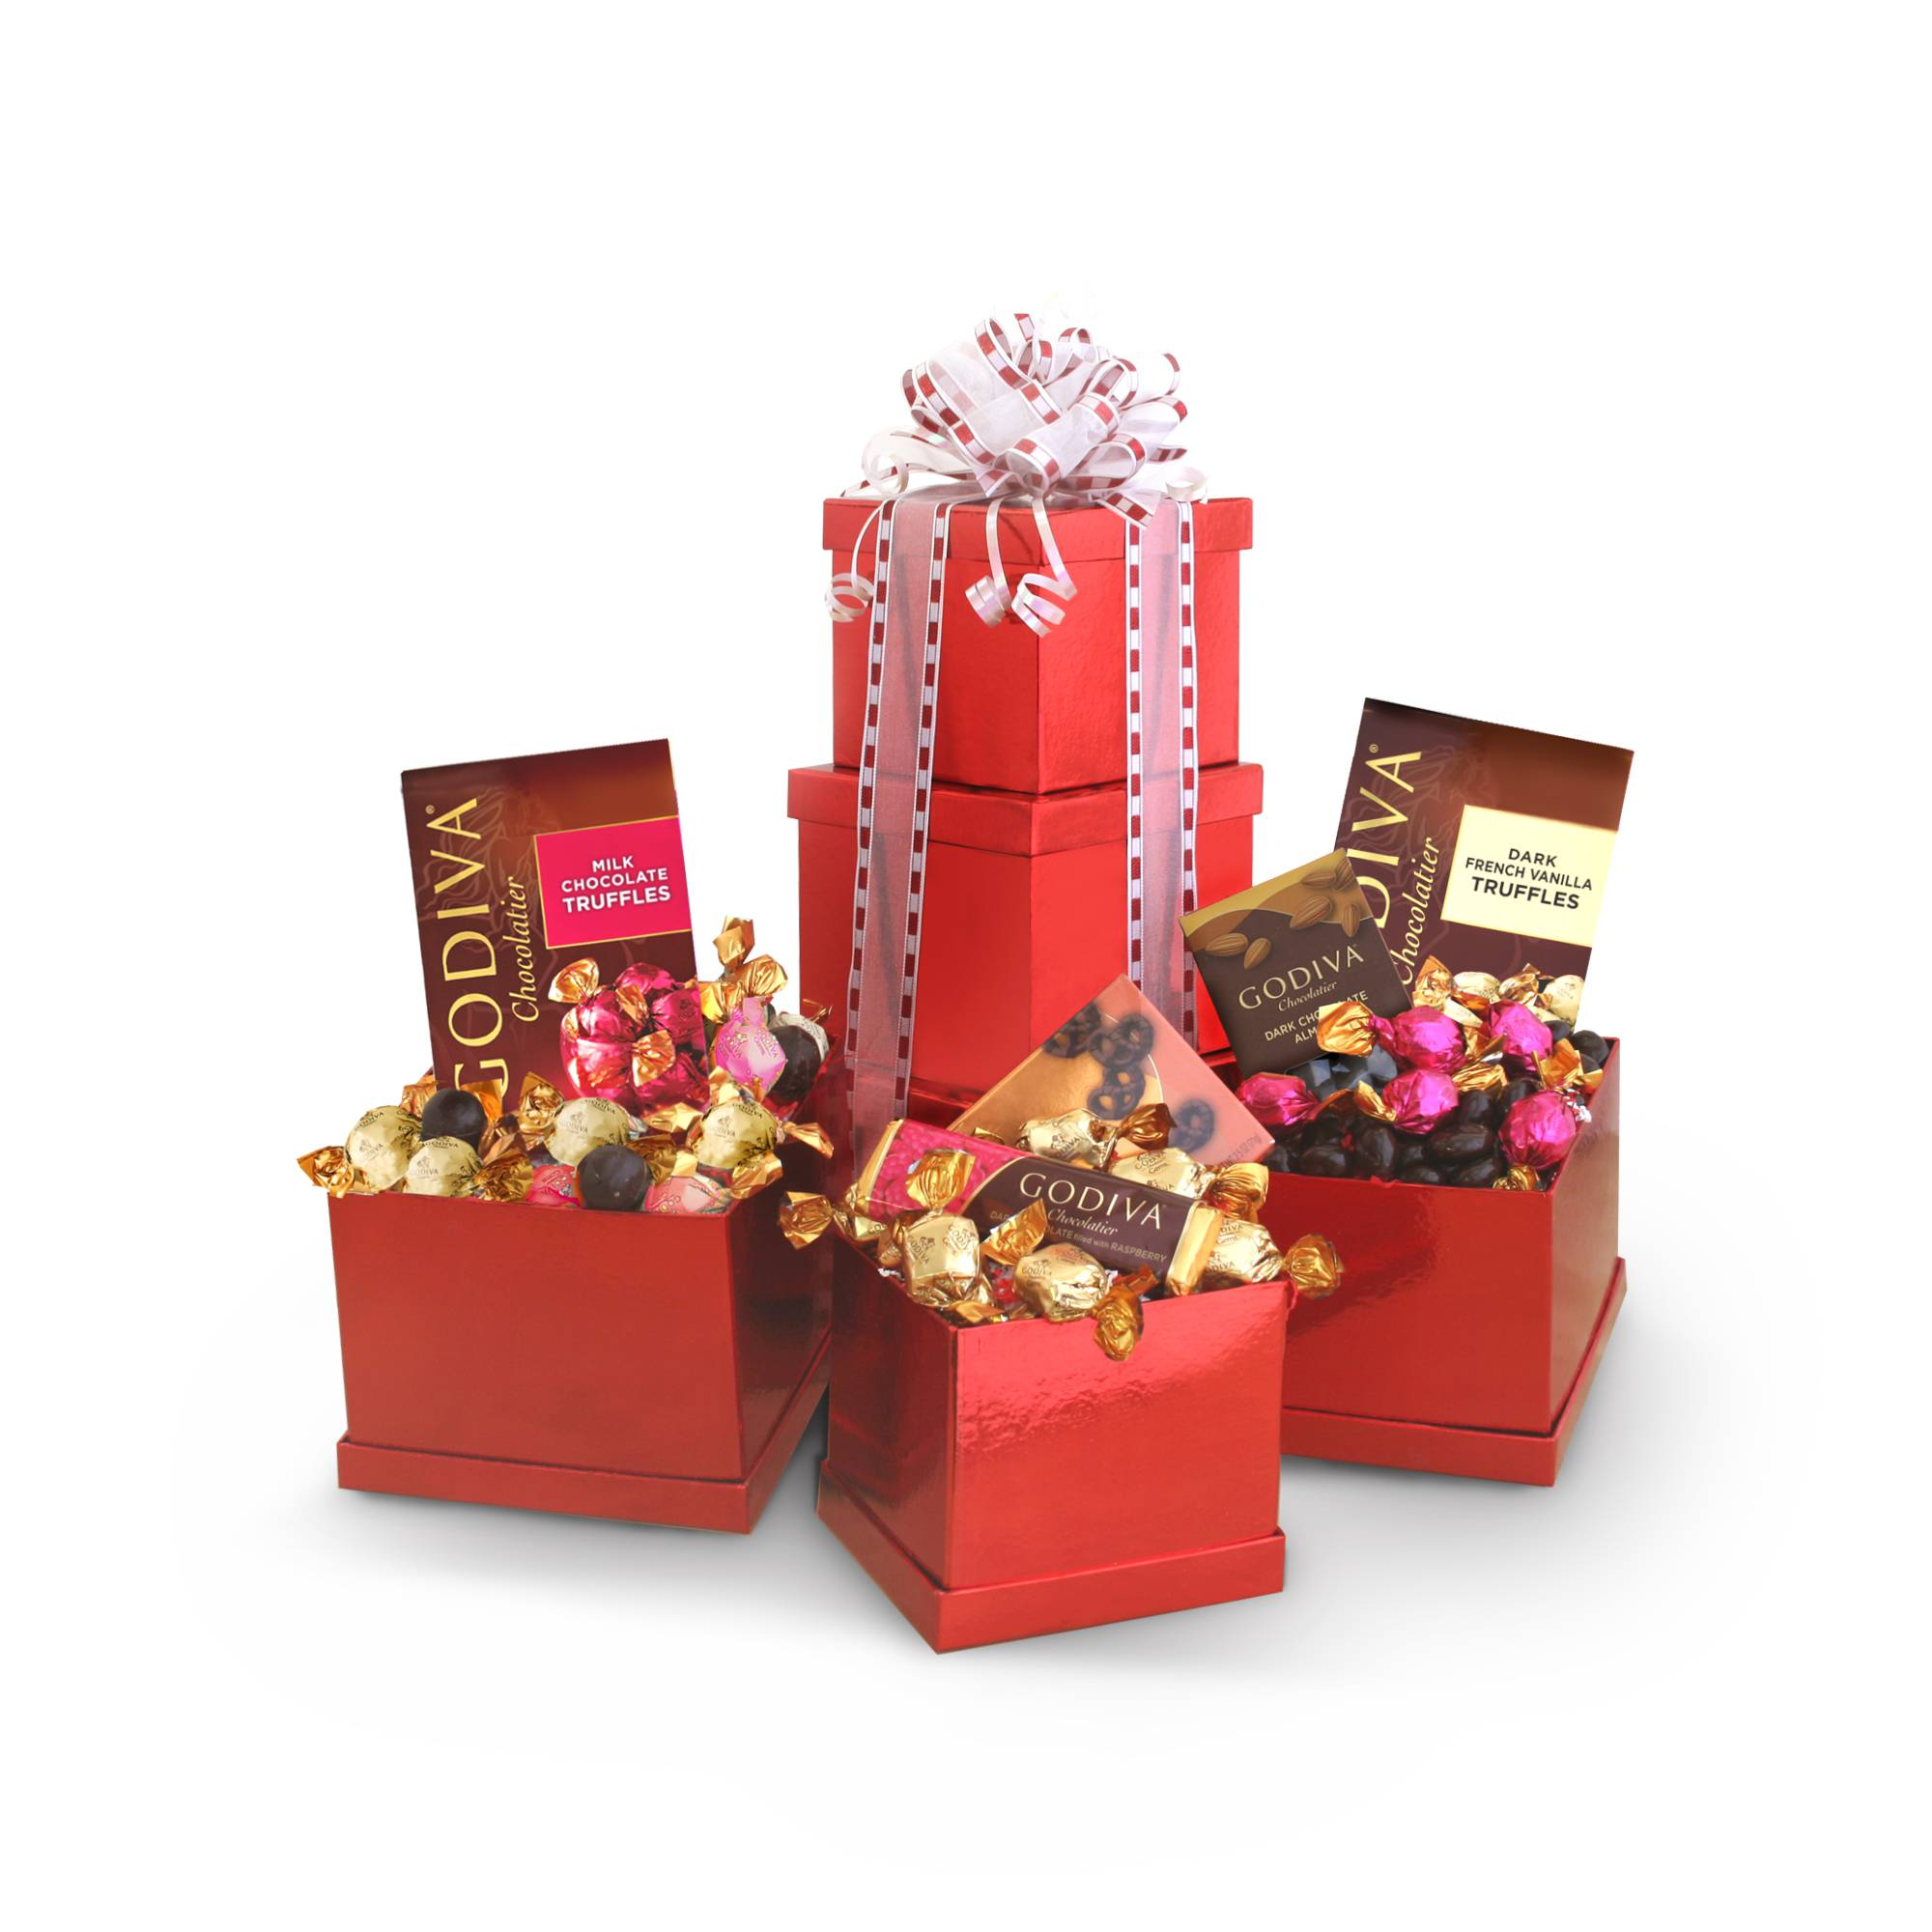 Godiva® Heights of Passion Valentine Tower